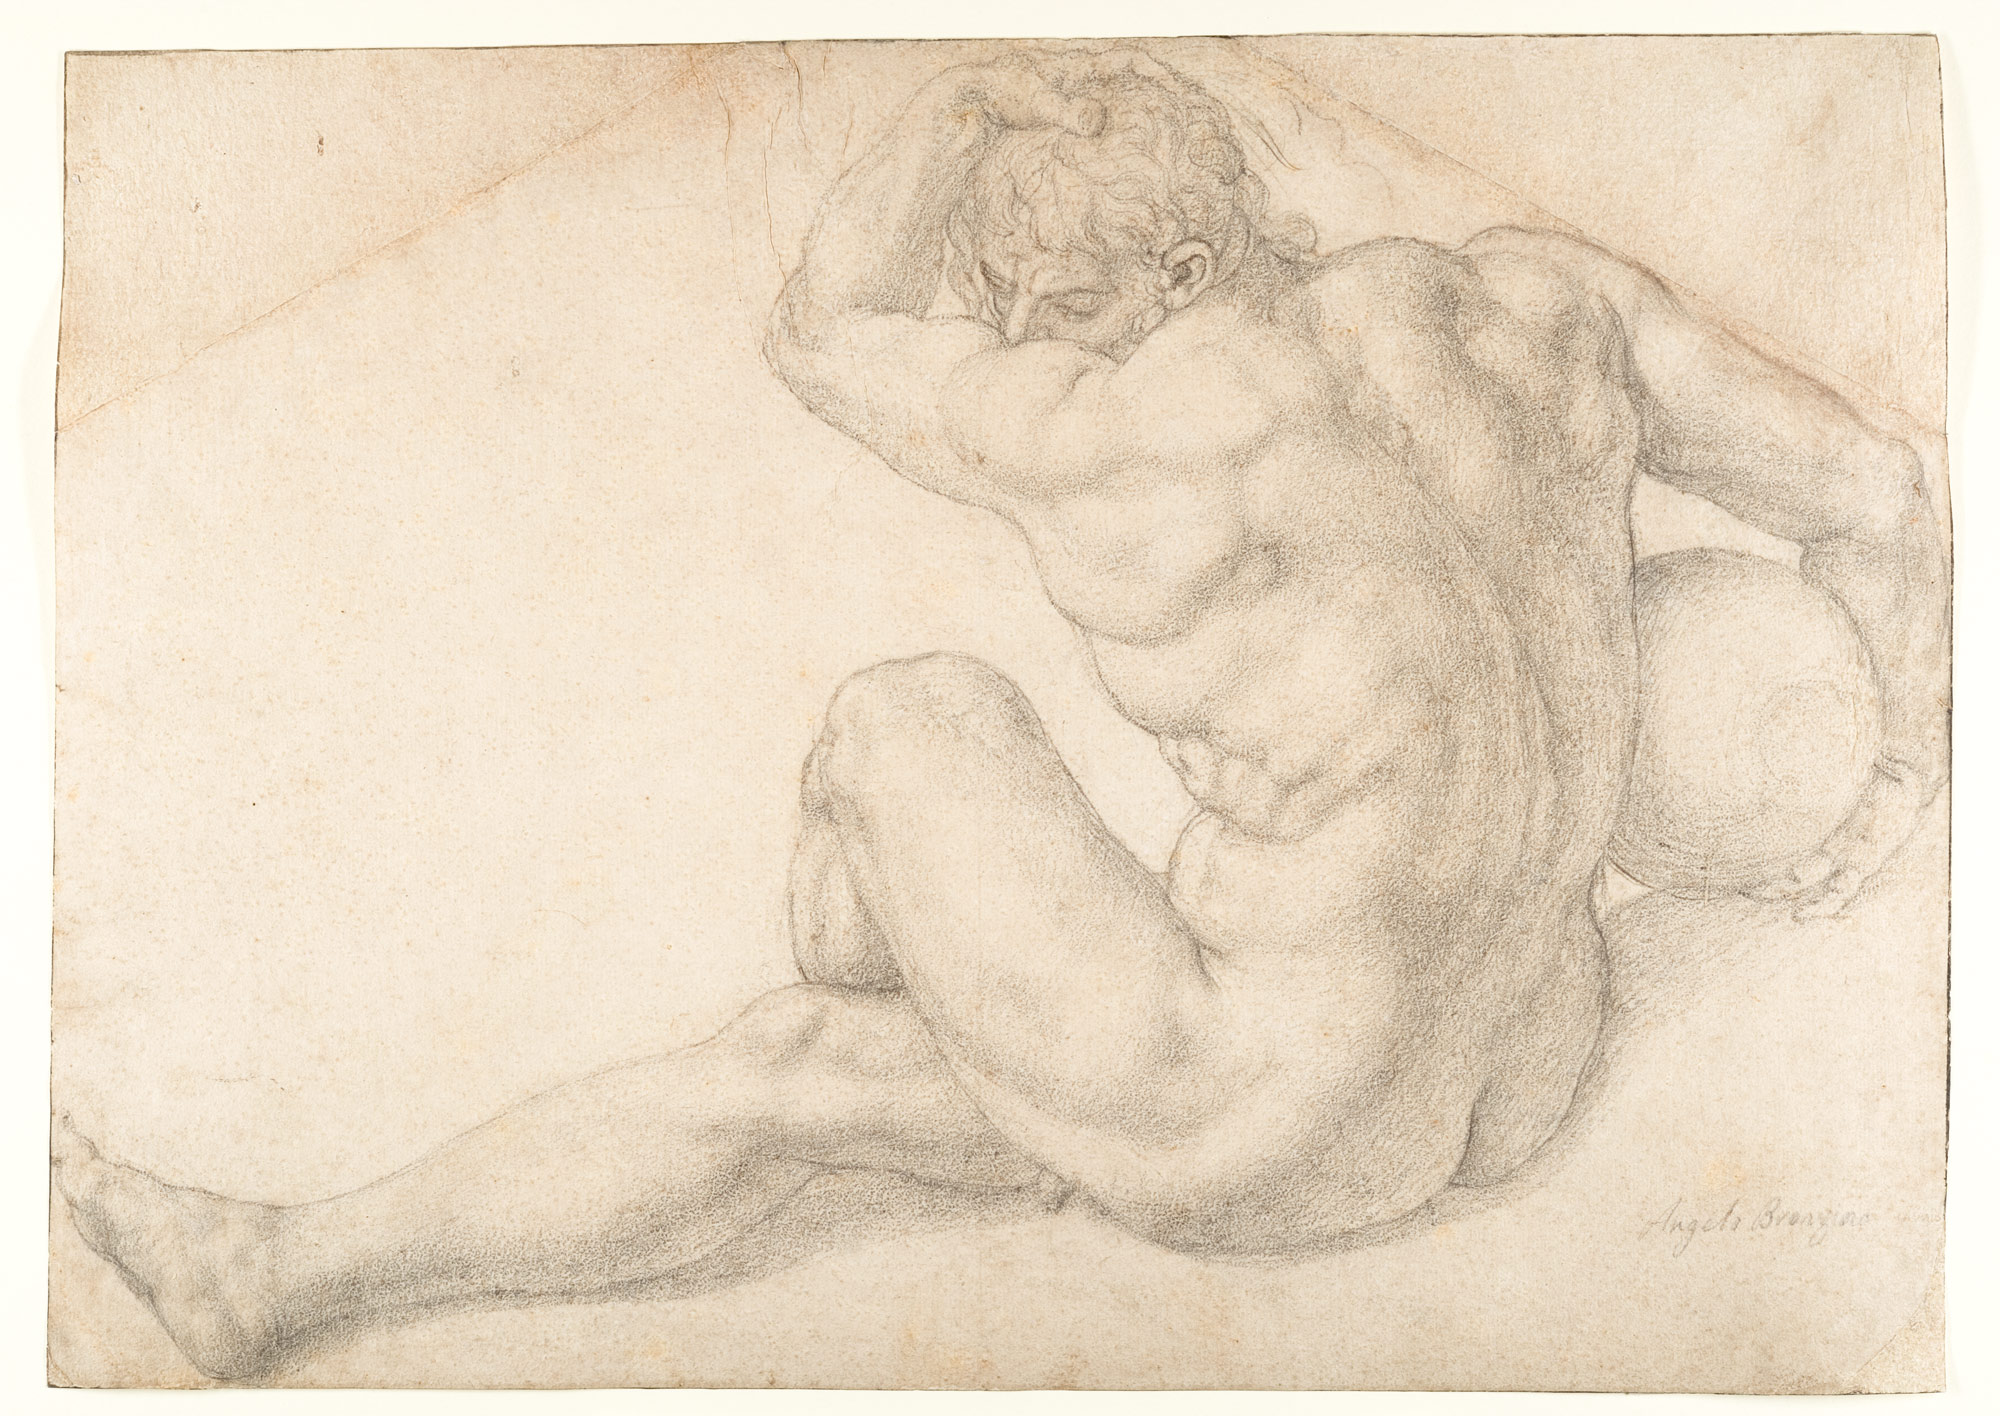 Seated Male Nude (Study for the Martyrdom of St. Lawrence)